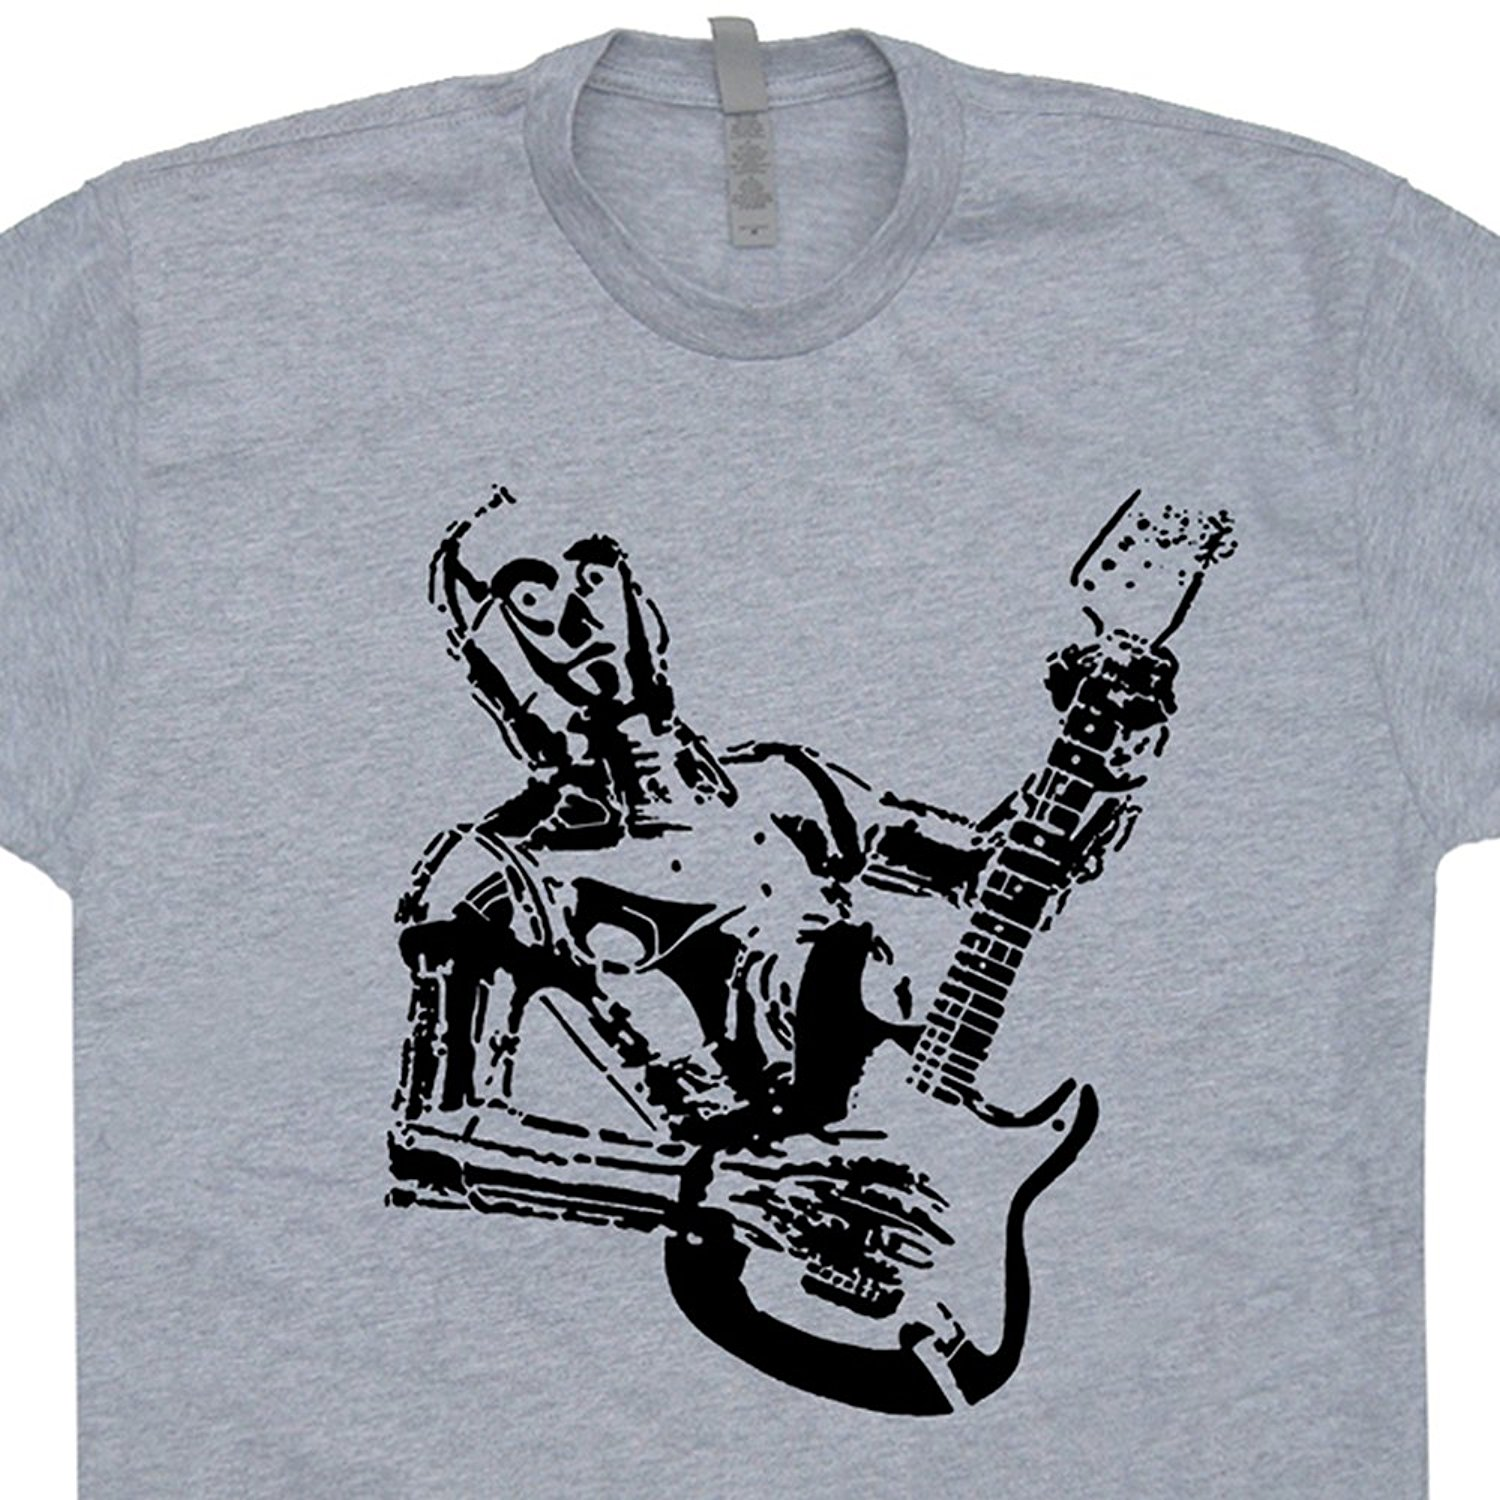 c3po guitar t shirts bass amp electric yoda playing rock band acoustic vintage mens t shirt. Black Bedroom Furniture Sets. Home Design Ideas